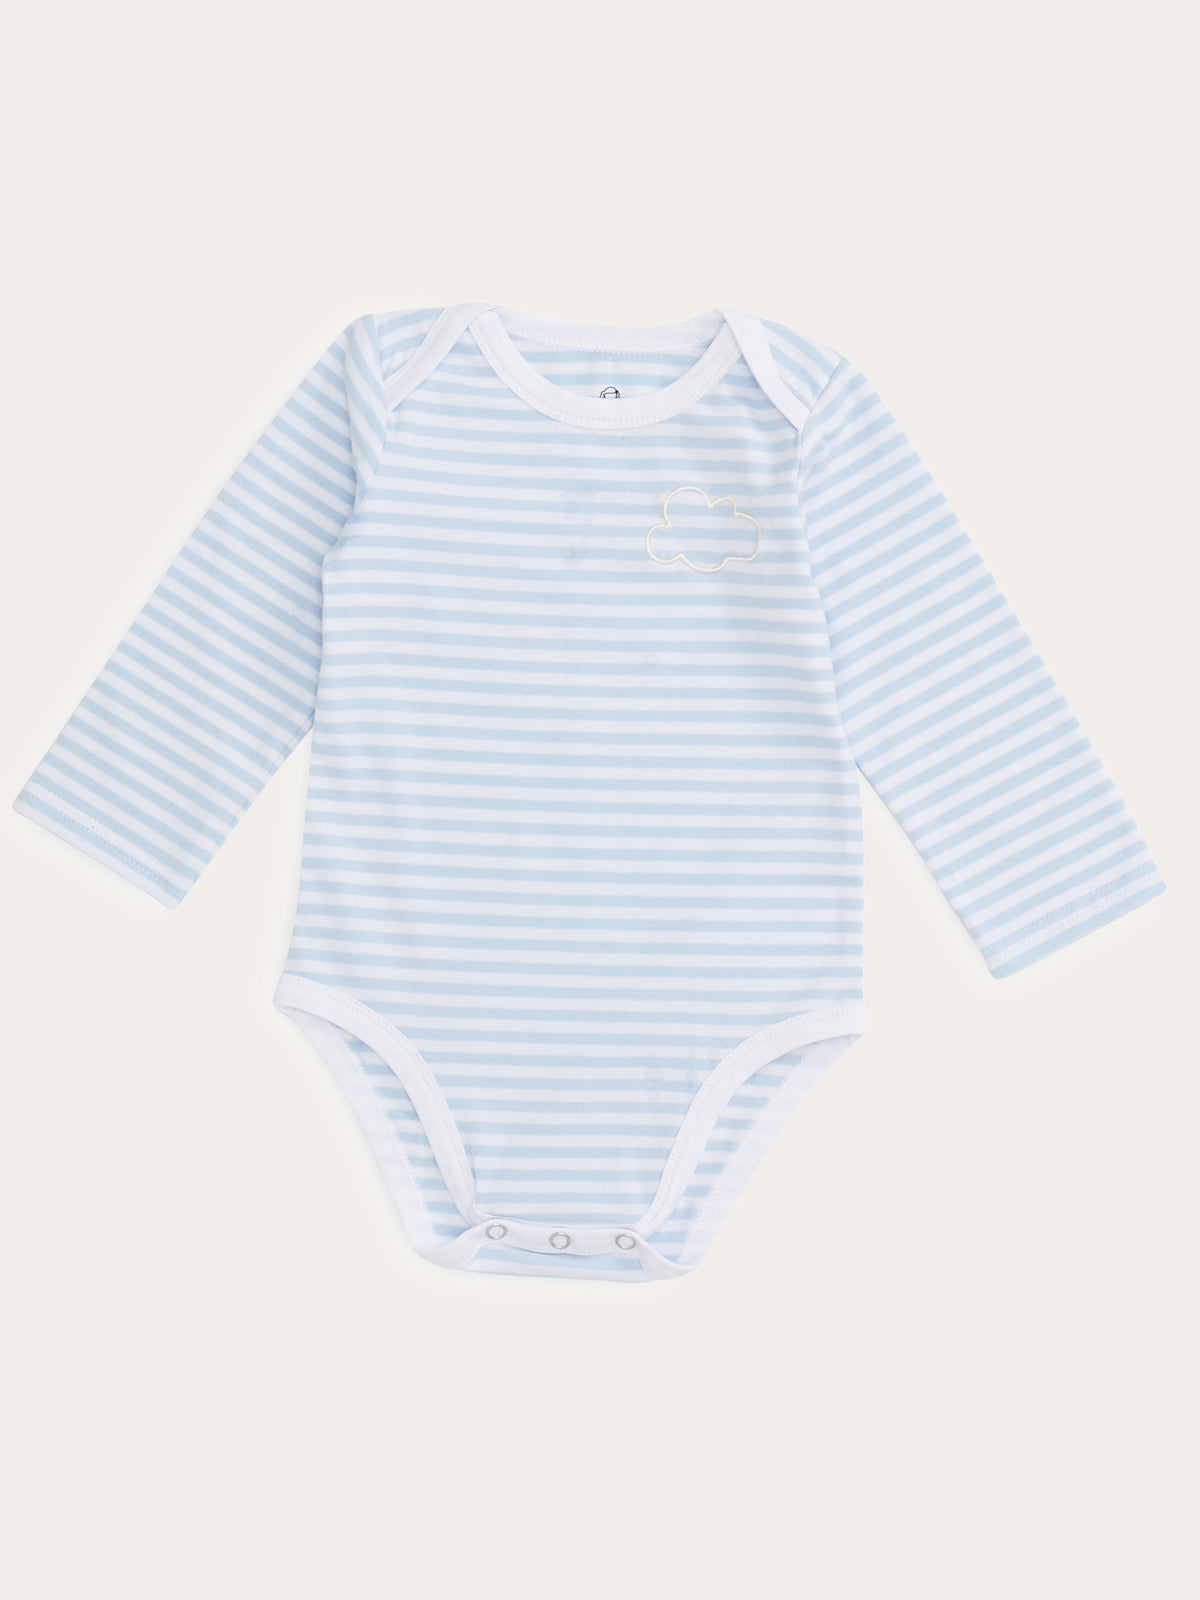 Roo Onesie in Sky Stripe By Morgan Lane